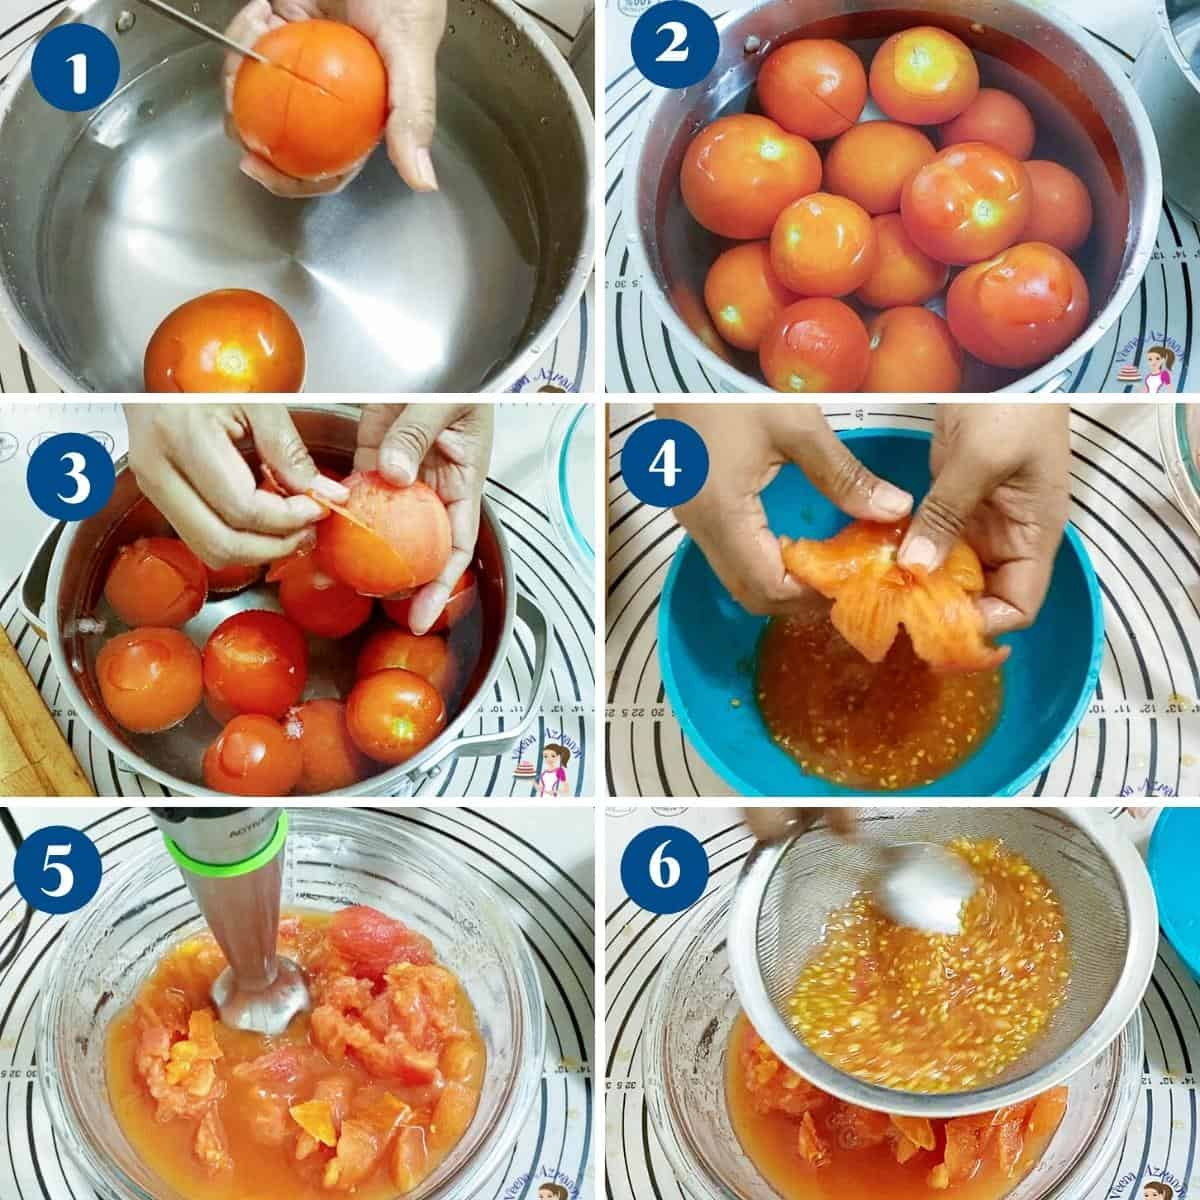 Progress pictures collage how to peel fresh tomatoes for marinara.